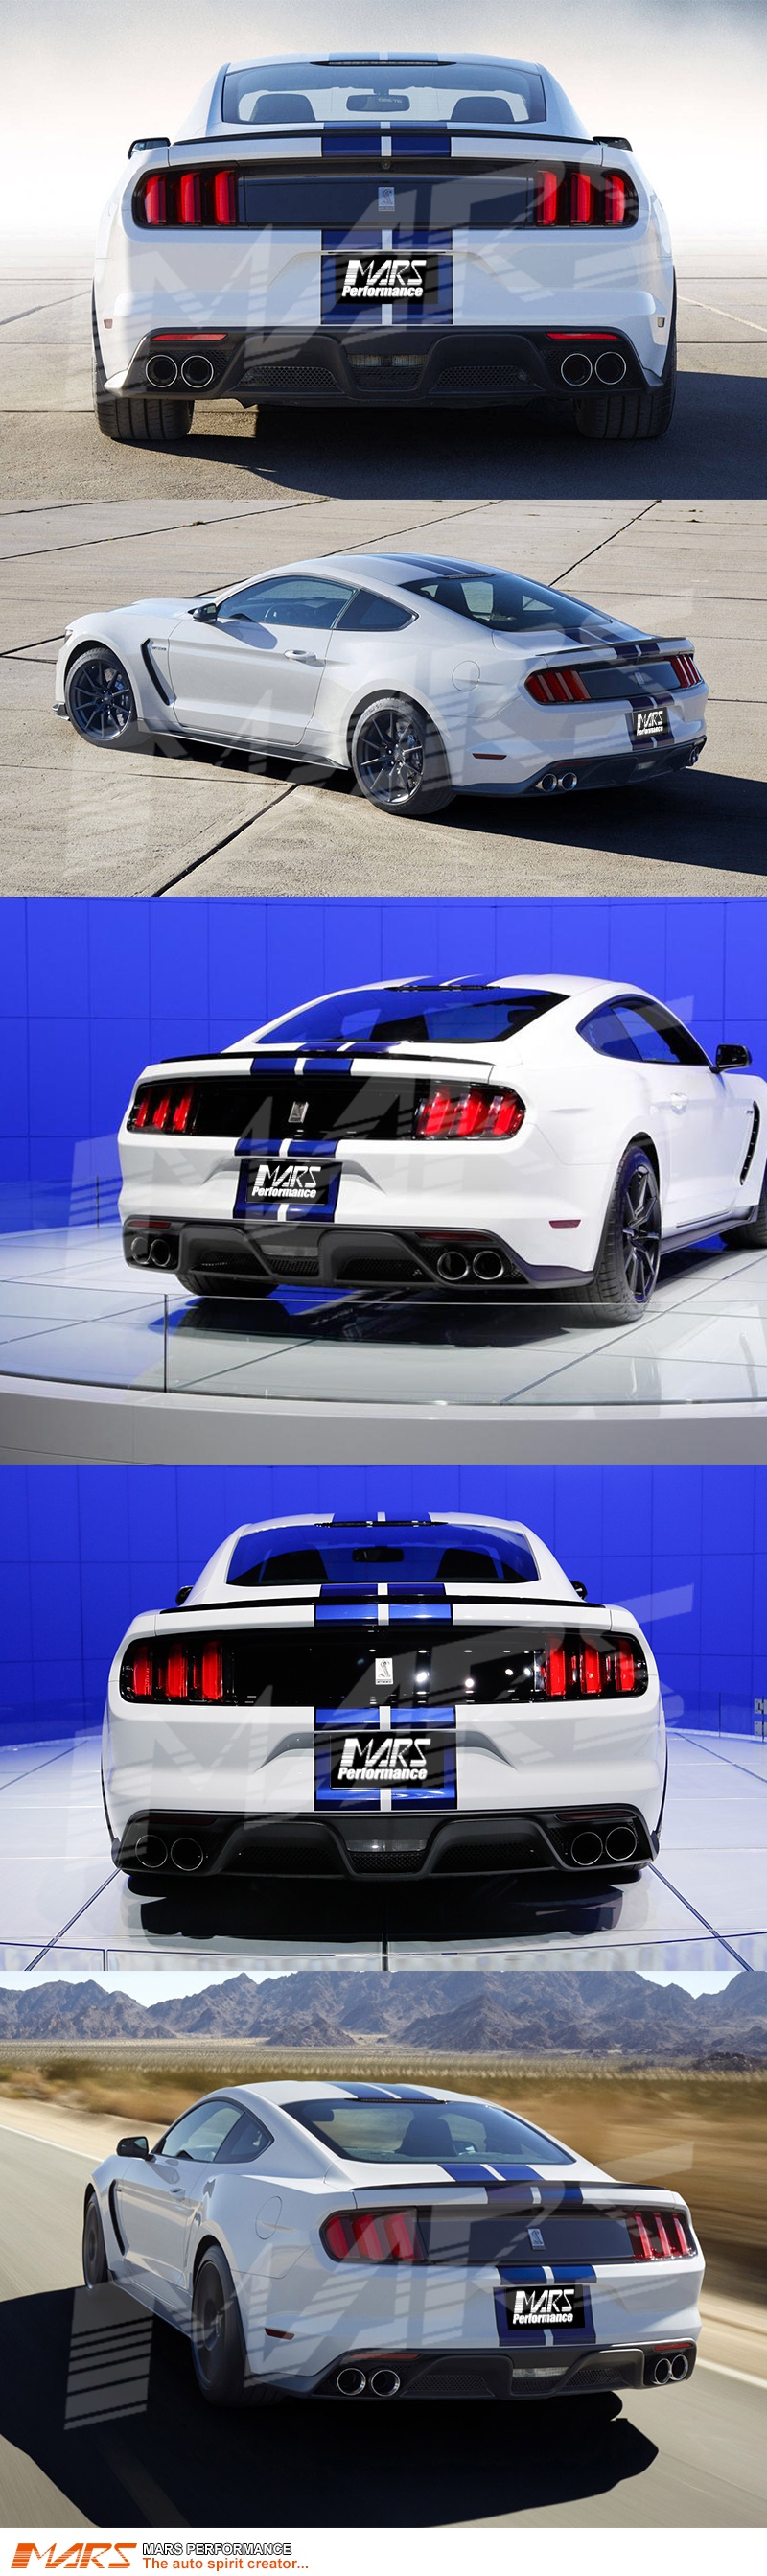 shelby gt350 style rear bumper bar diffuser with exhaust. Black Bedroom Furniture Sets. Home Design Ideas